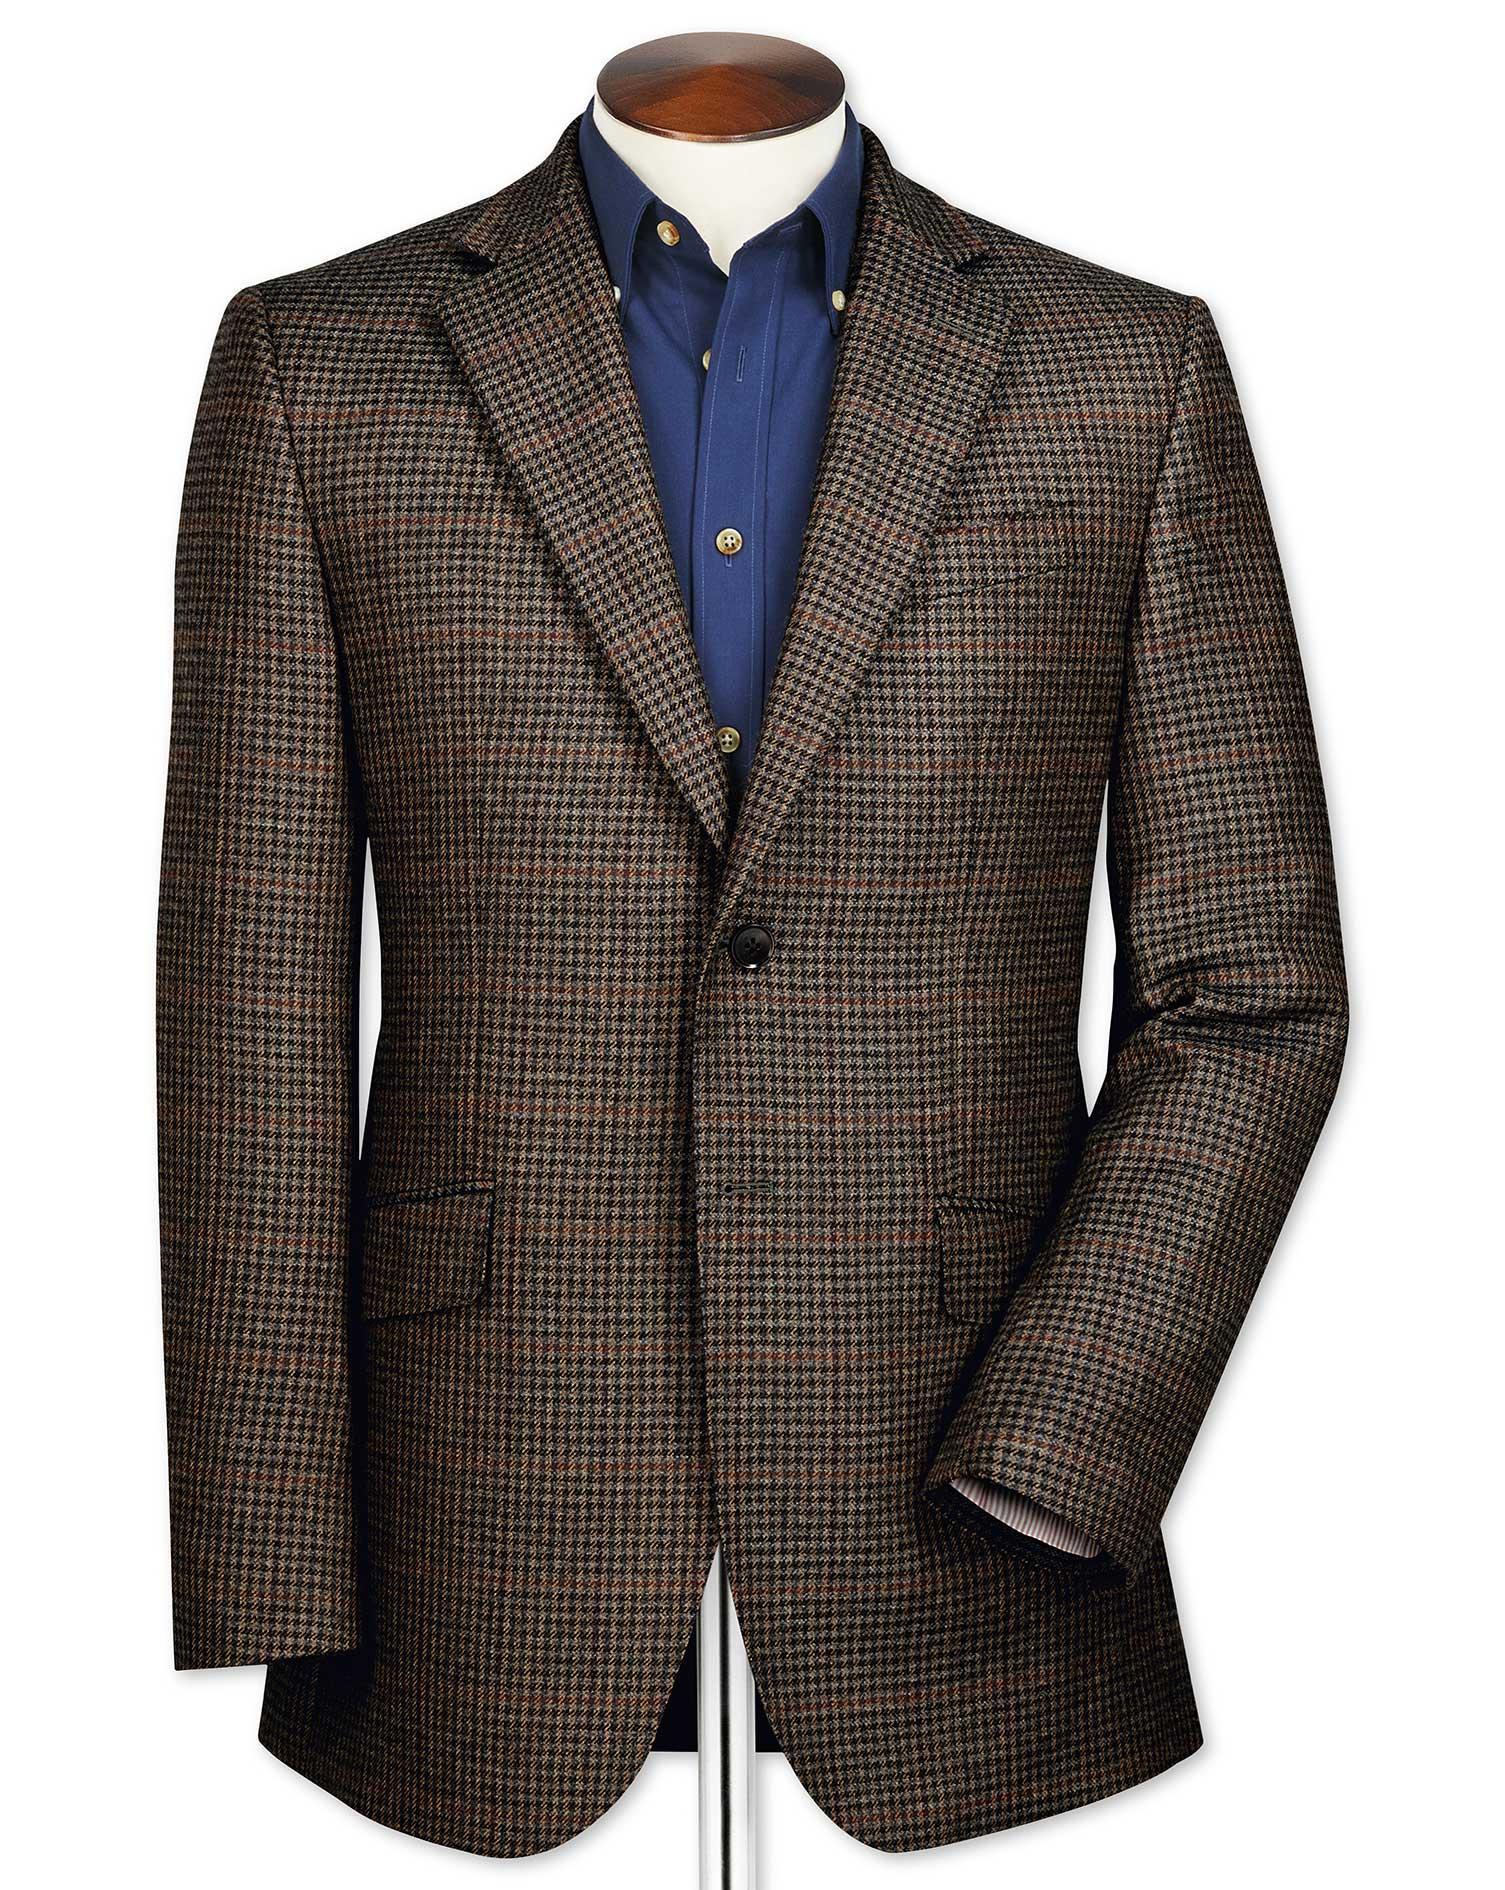 Classic Fit Brown Semi-Plain Lambswool Wool Jacket Size 40 Long by Charles Tyrwhitt